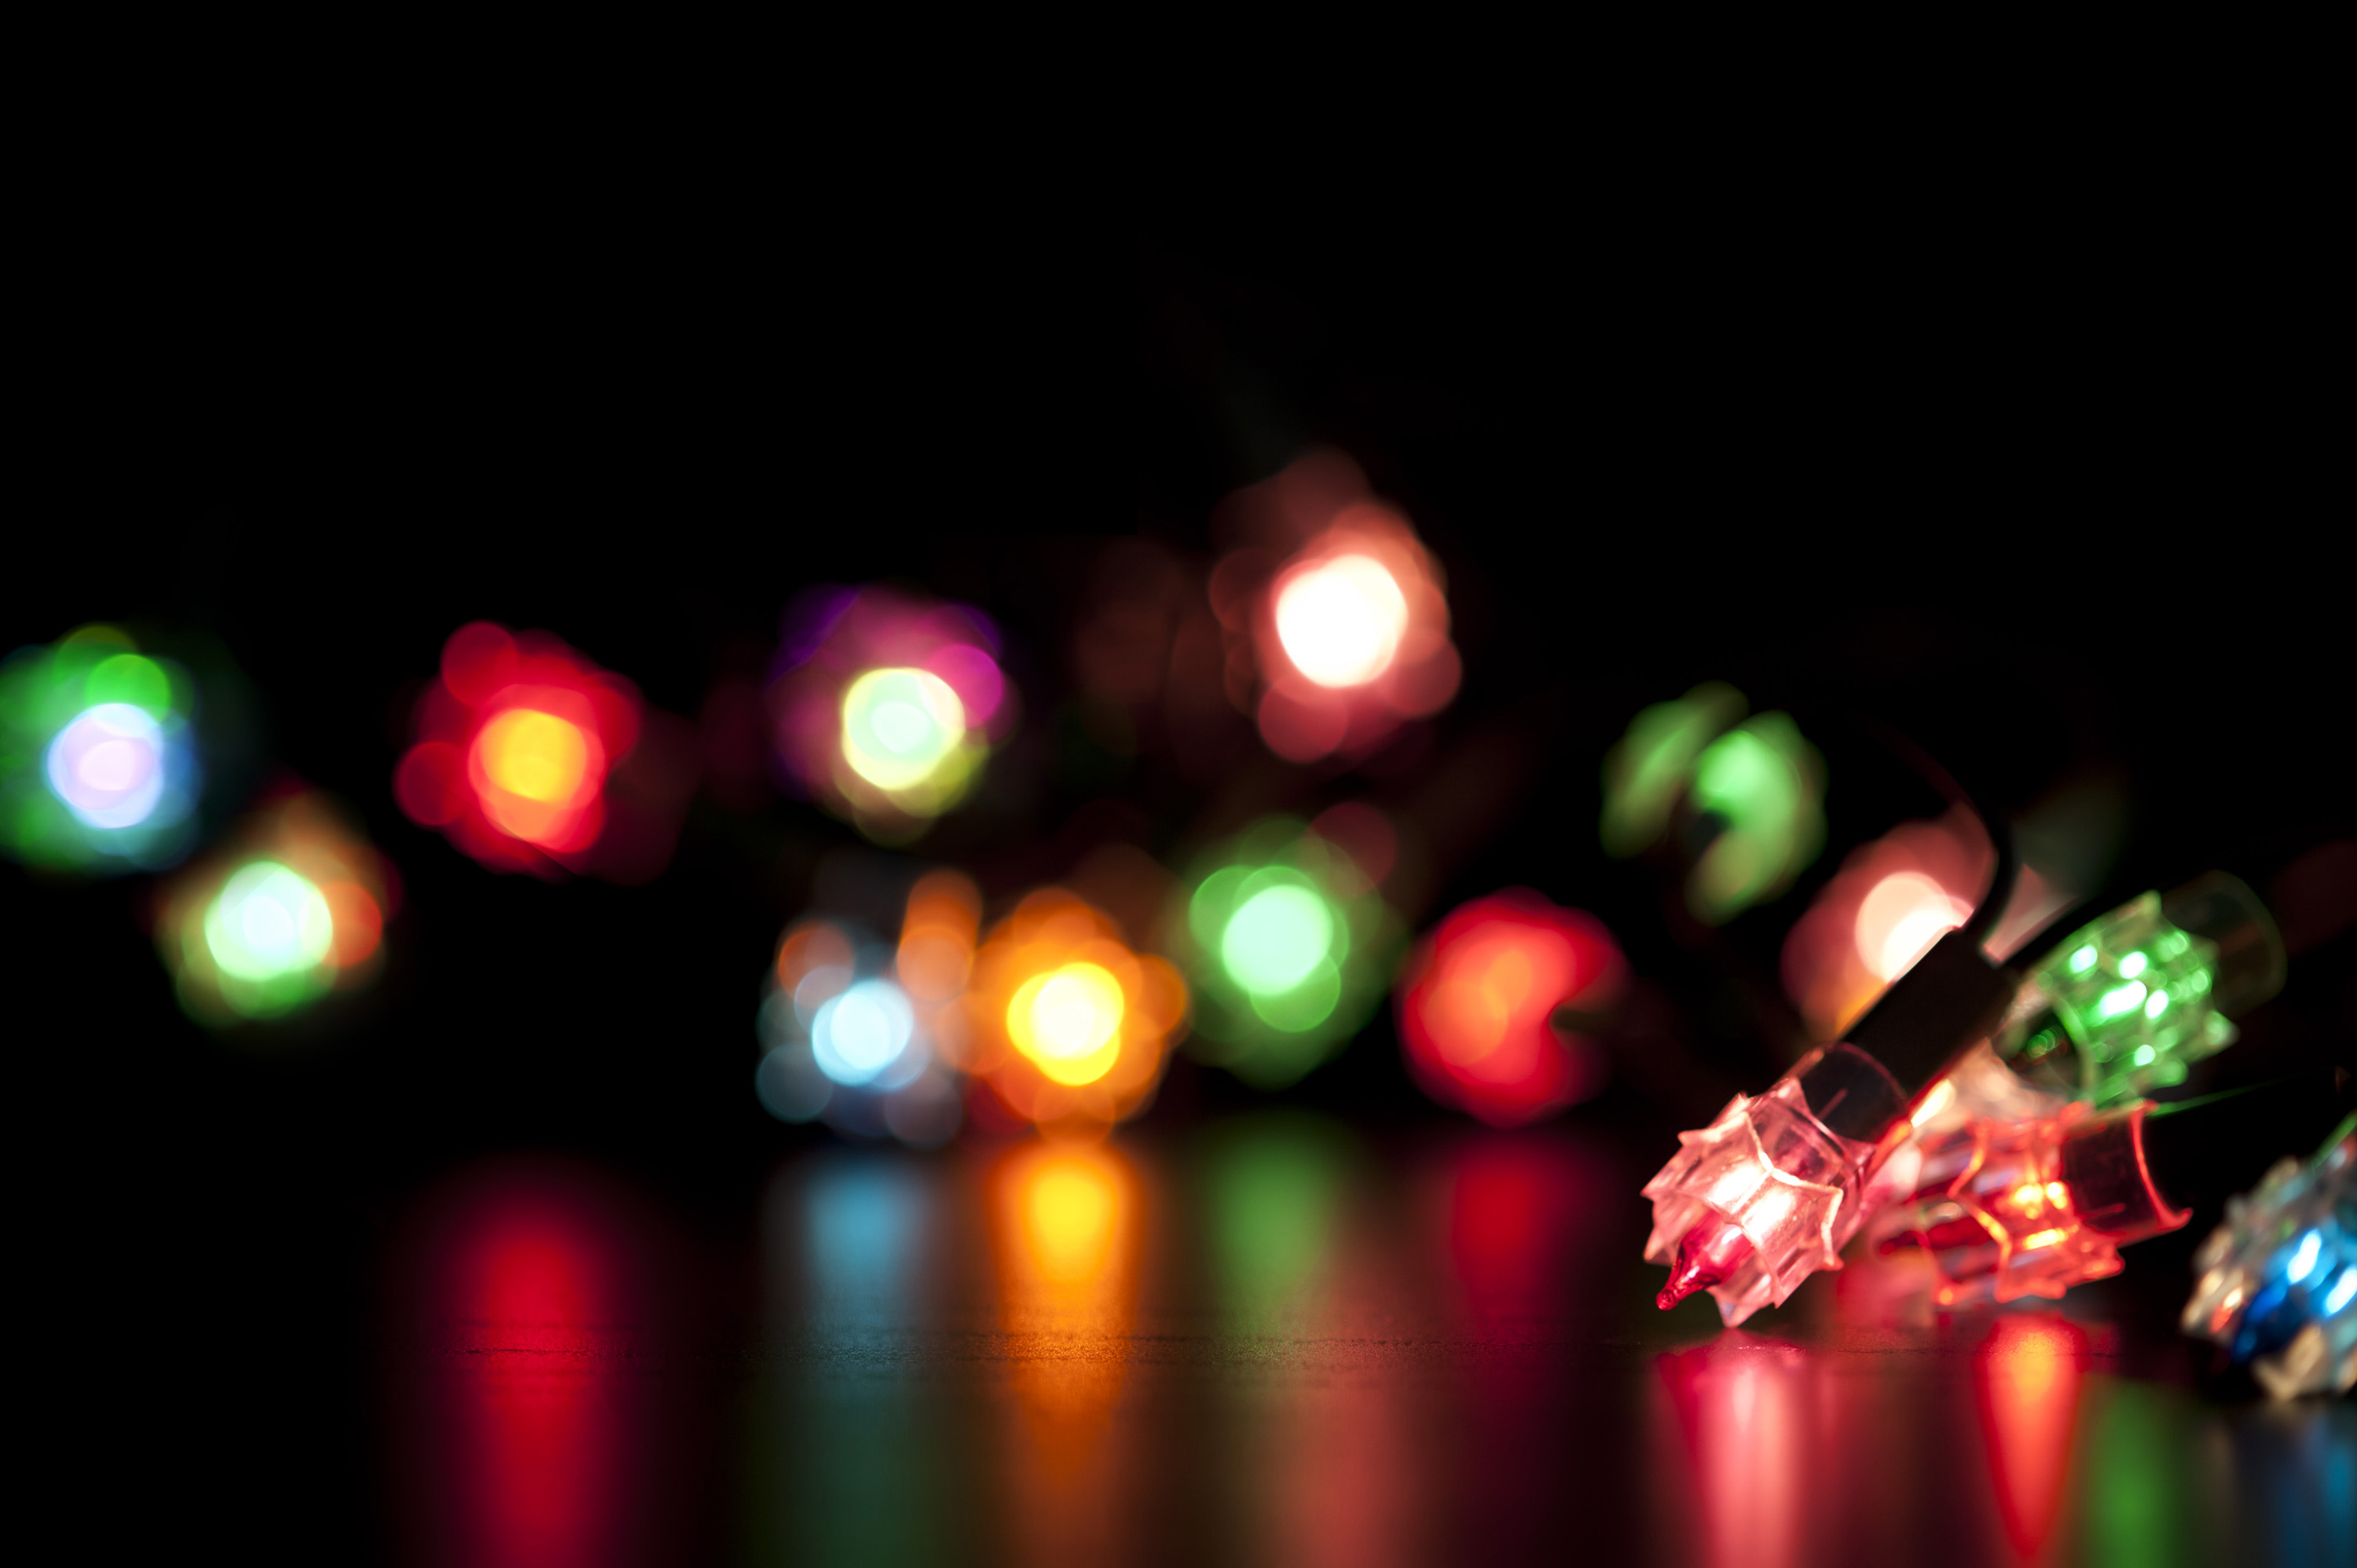 Free Christmas Lights.Photo Of Colourful Christmas Lights Free Christmas Images